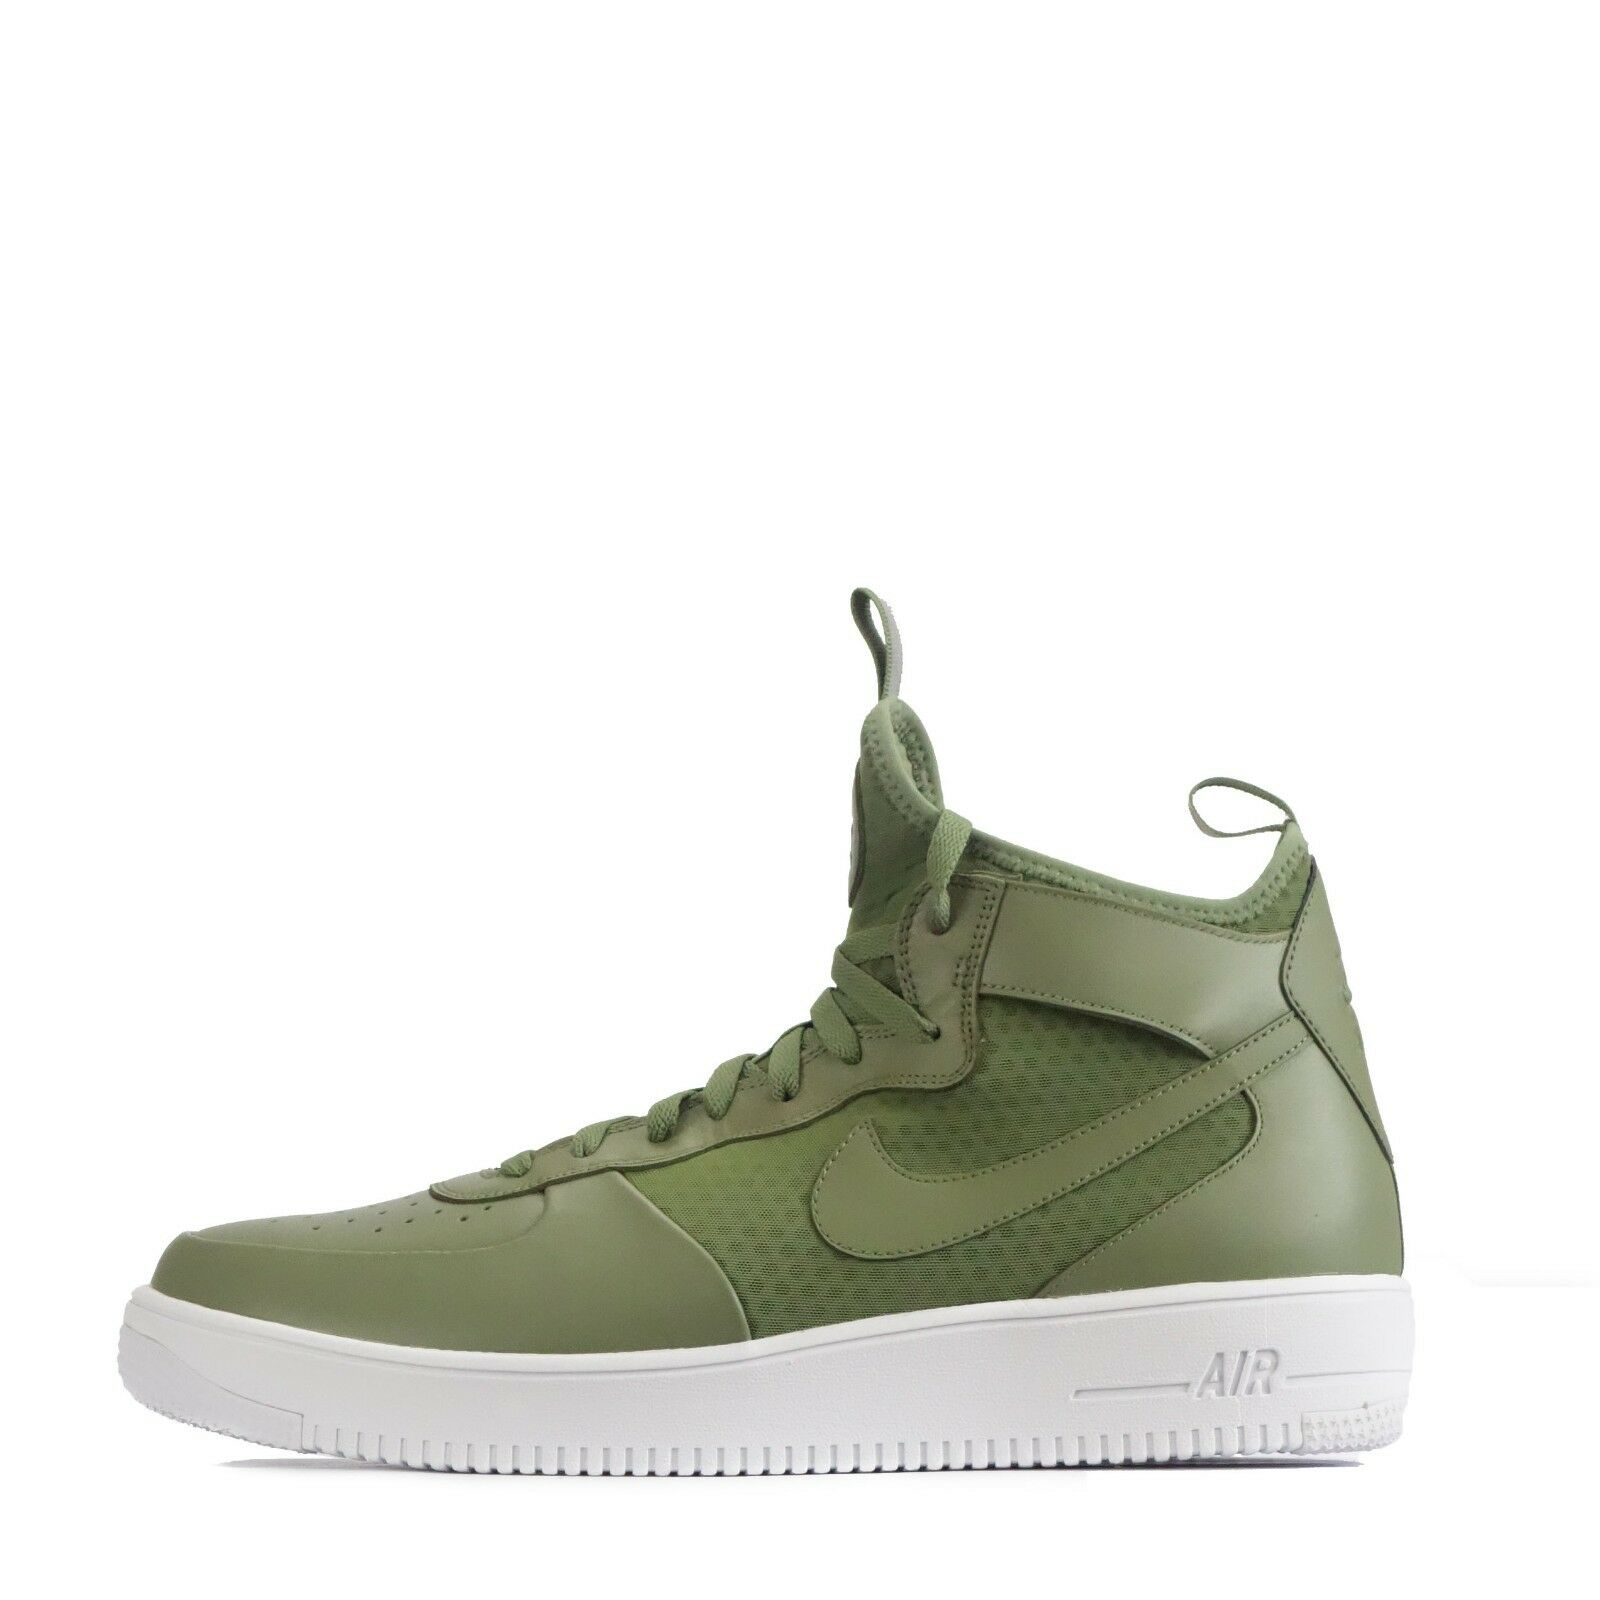 Nike Air Obliger 1 UltraObliger Mid homme Ankle Style Trainers Palm Green